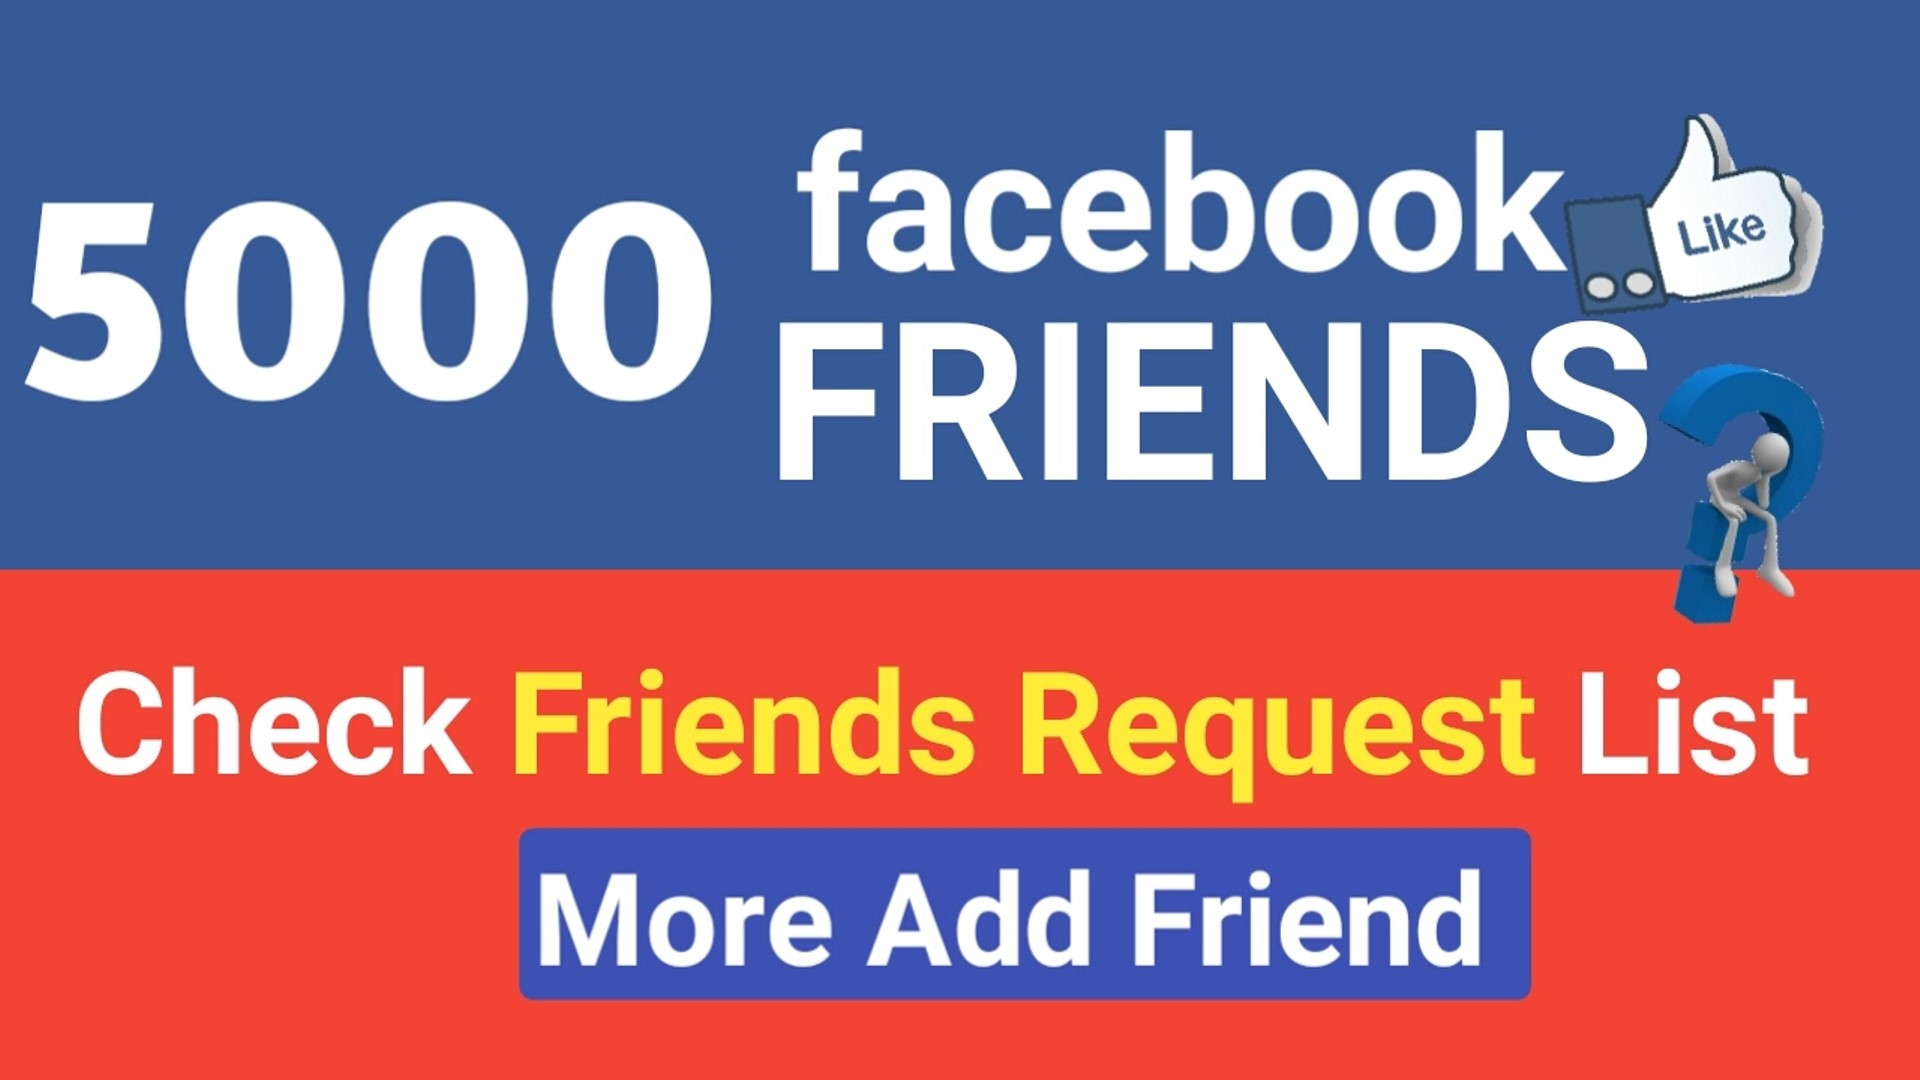 suggest you to 2000 friends on facebook